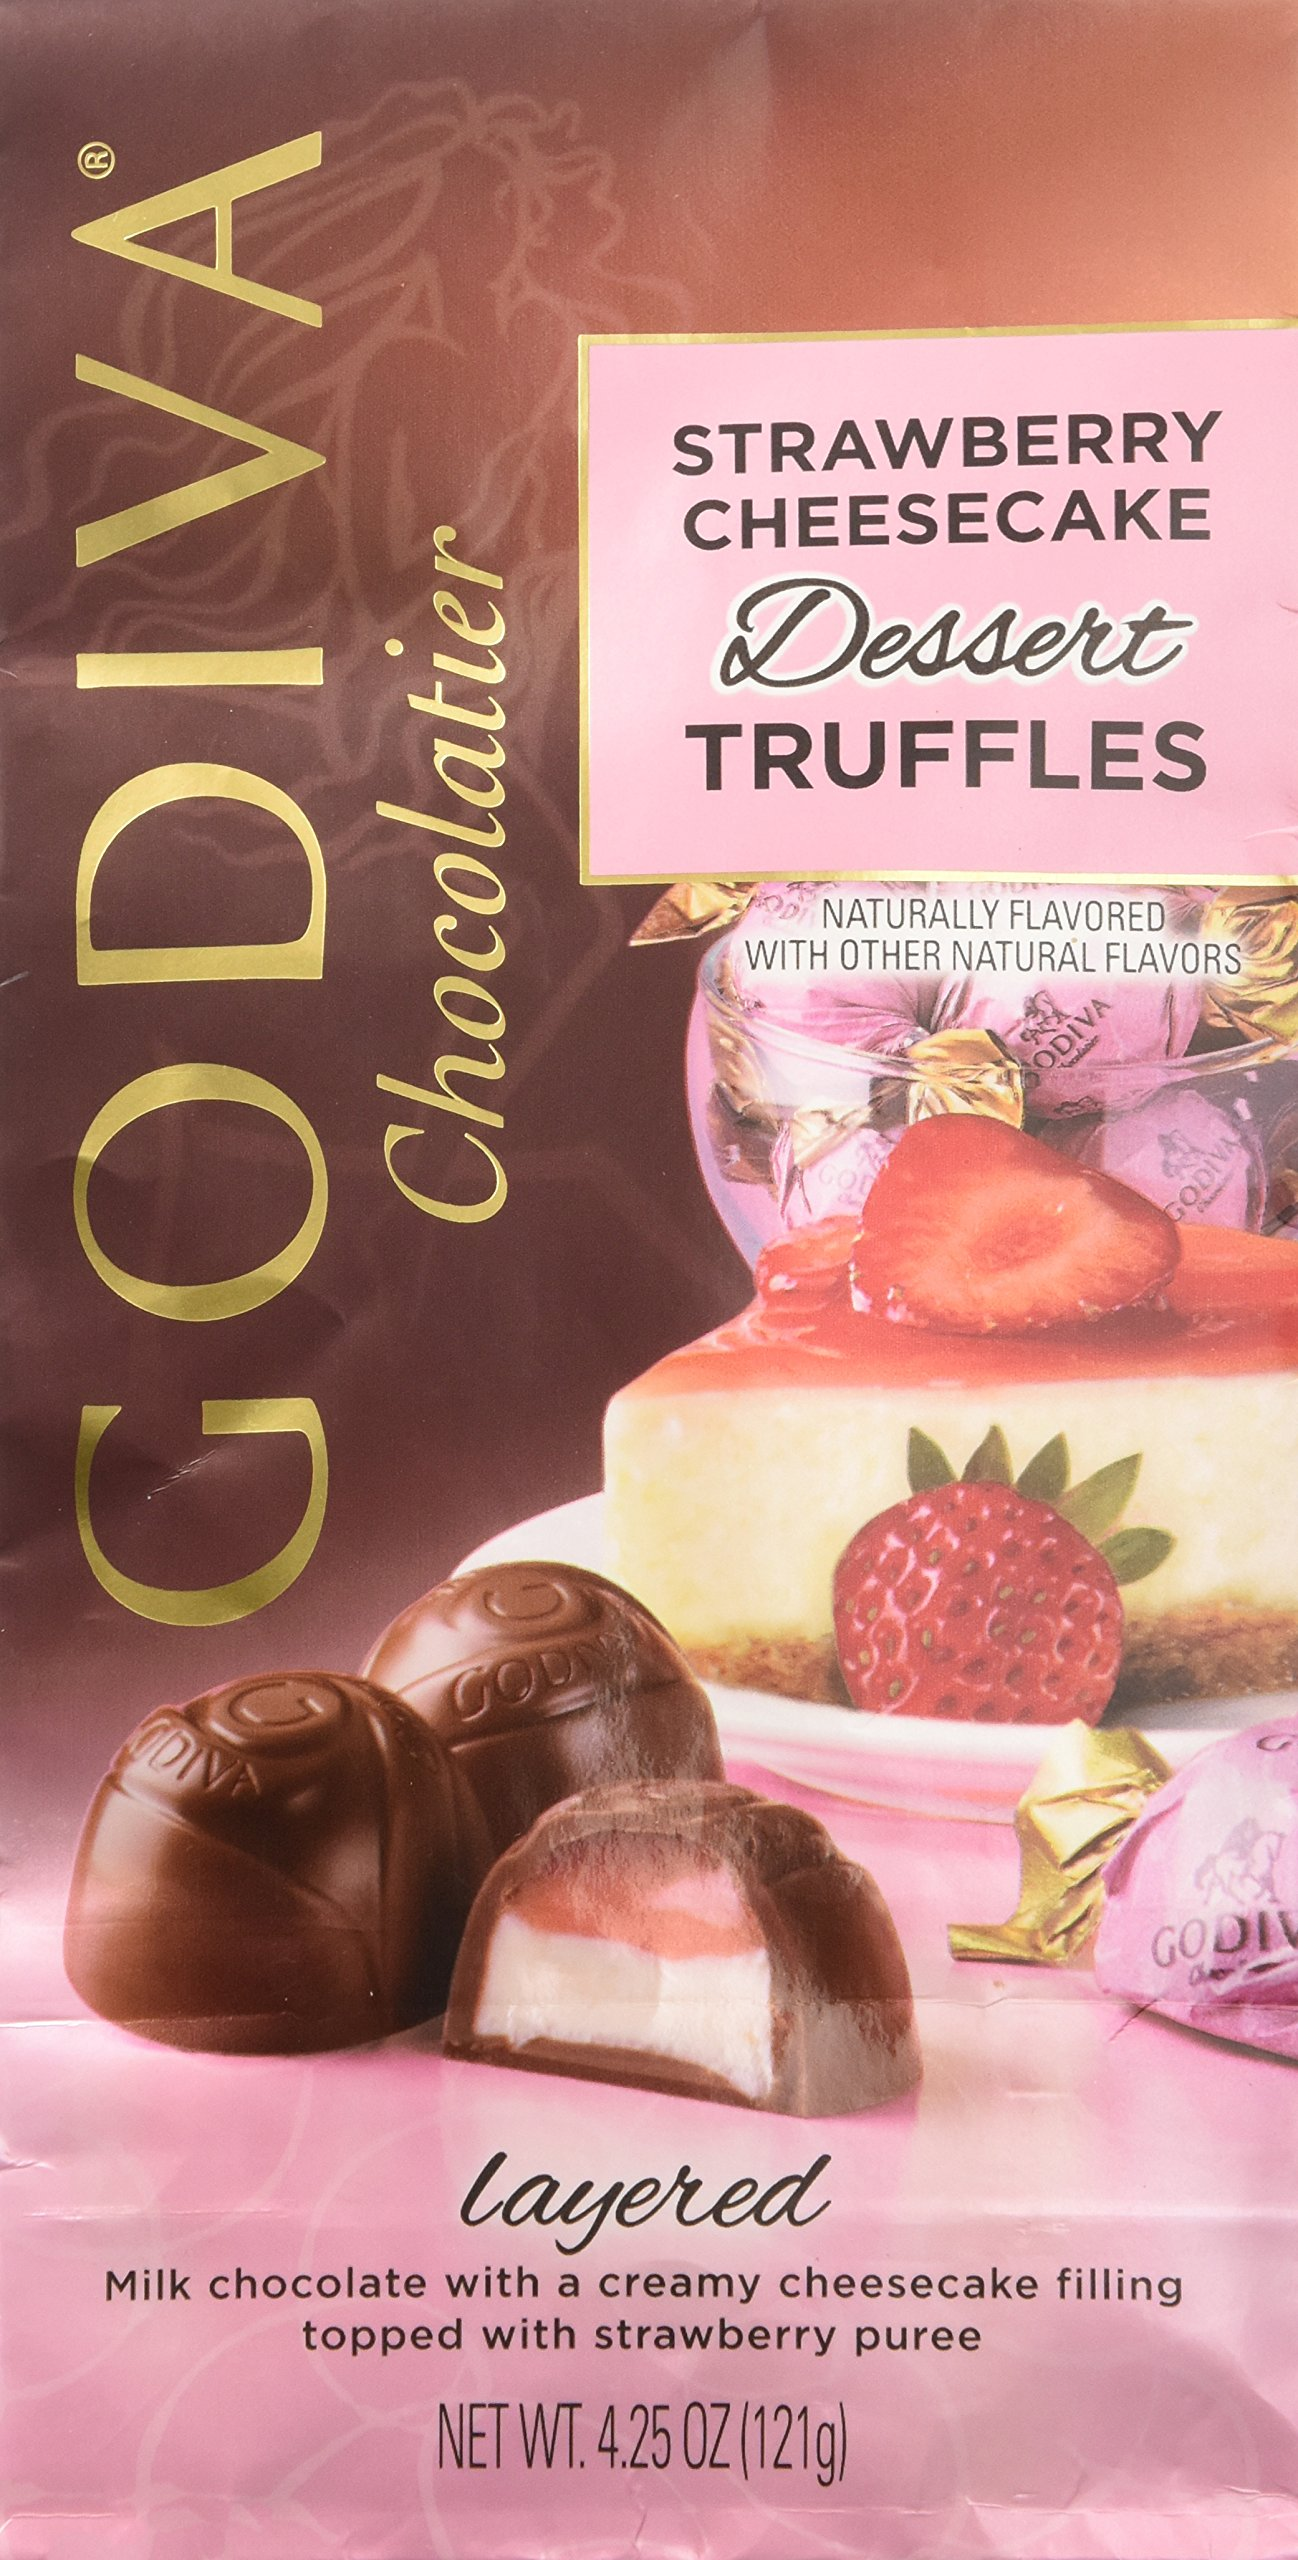 Amazon.com : Godiva Chocolatier Strawberry Cheesecake Dessert ...